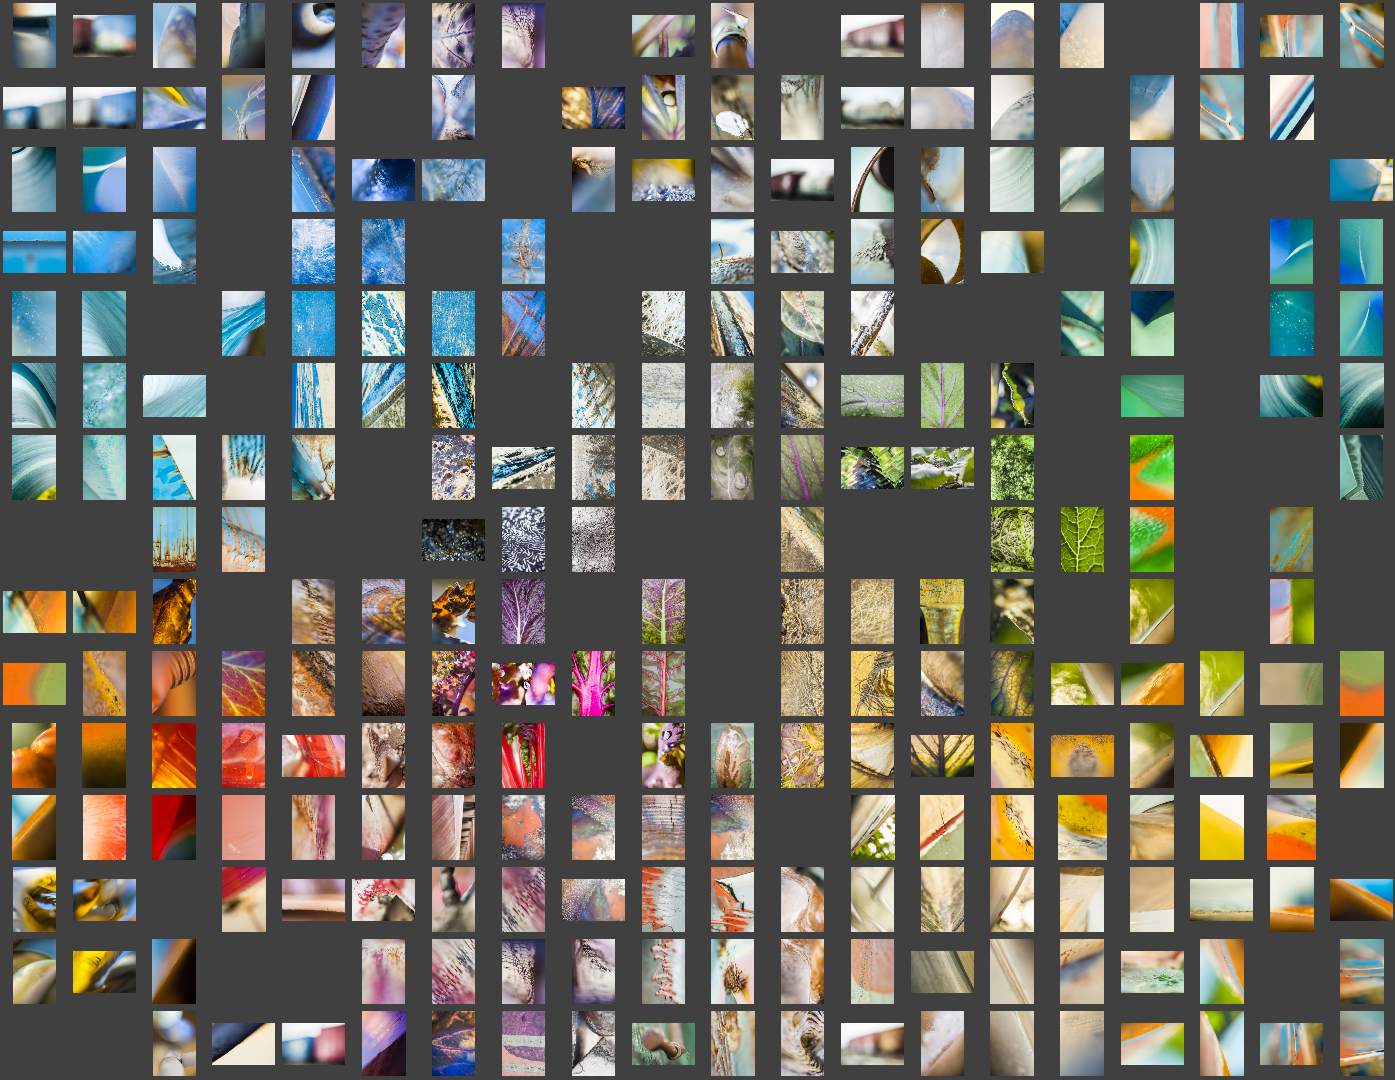 This graphic shows all 200+ images grouped according to color.